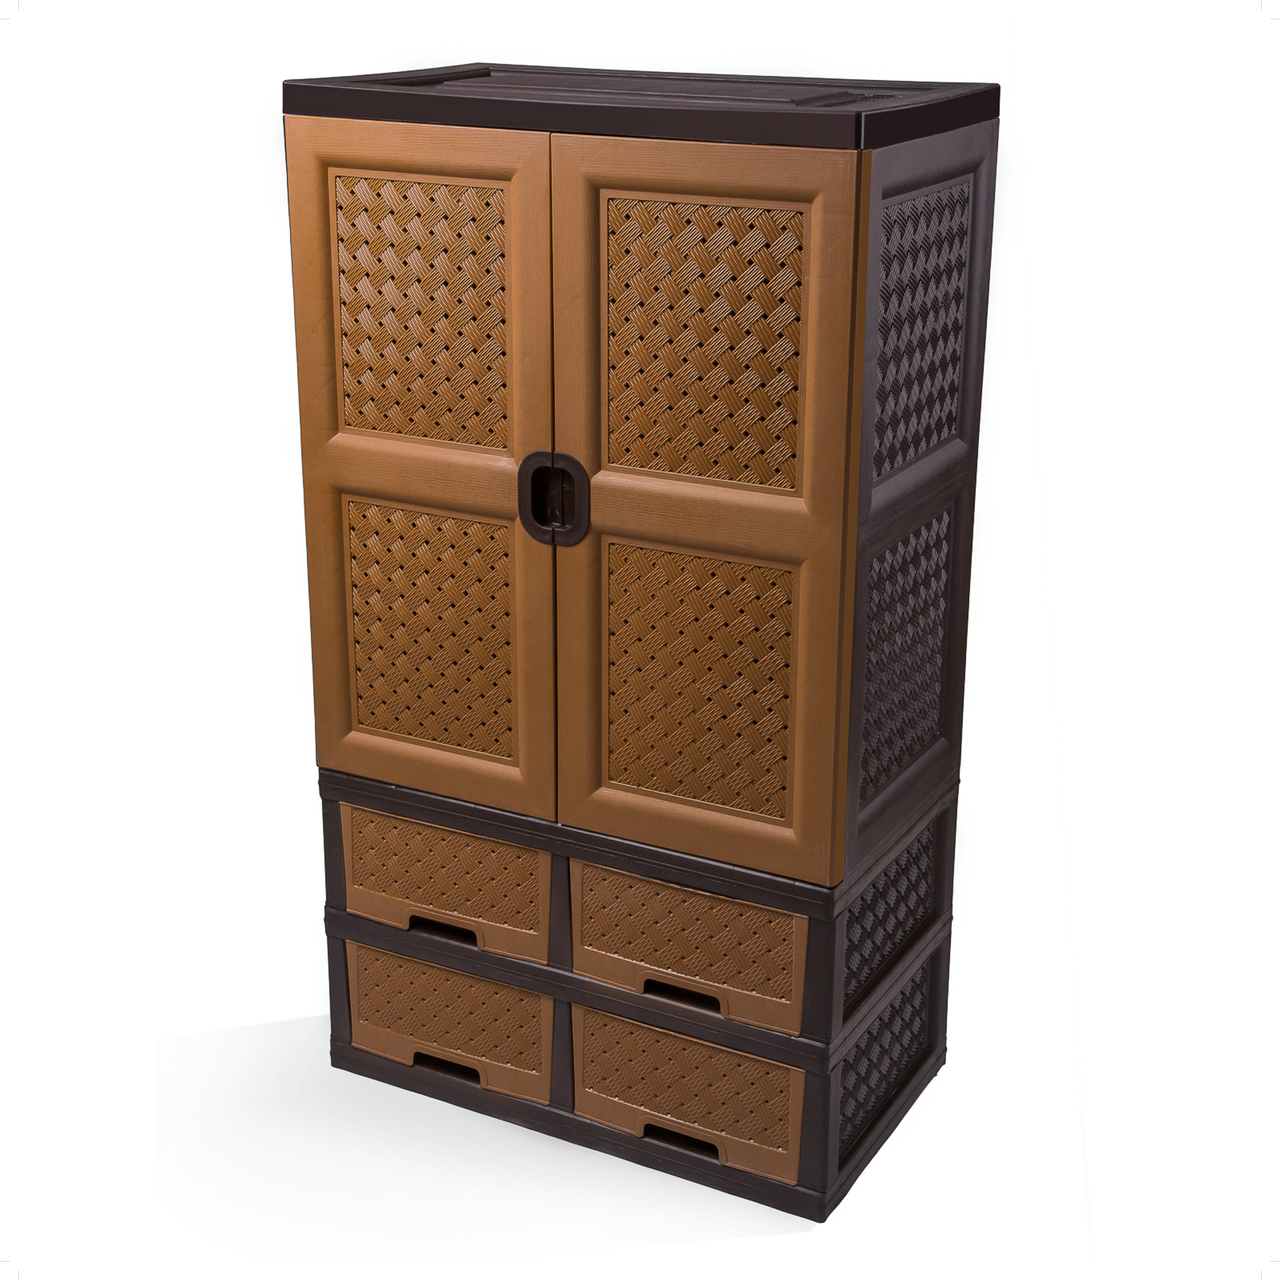 Classic wardrobe with four Drawers